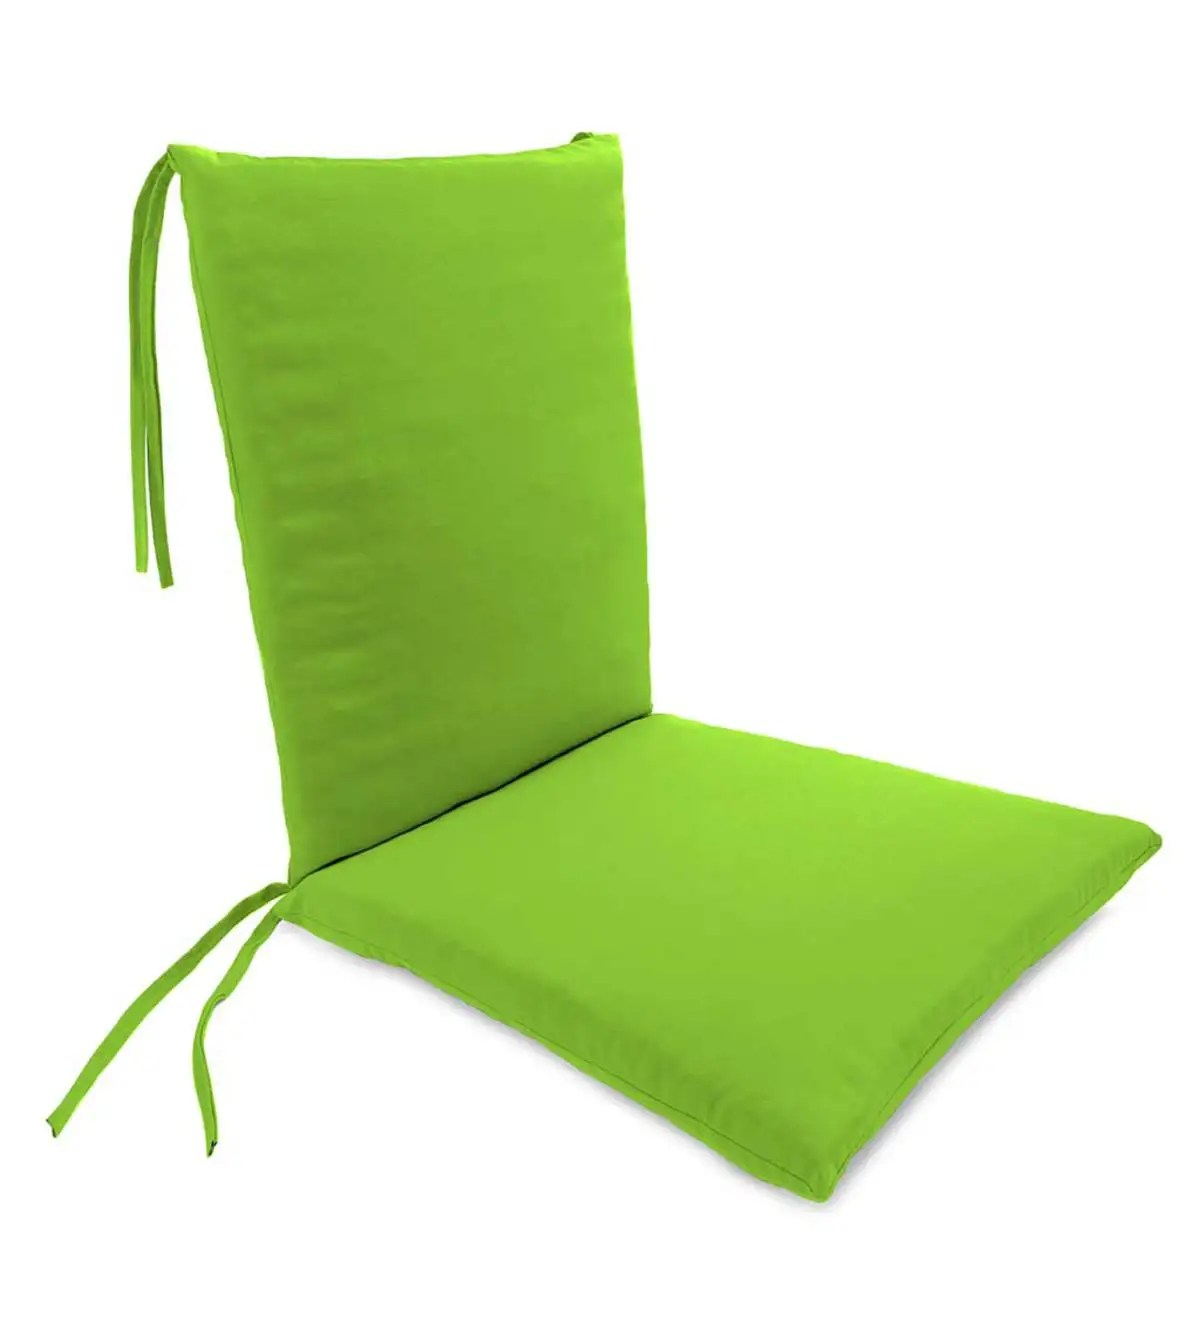 Deck Chair Cushions Polyester Classic Rocking Chair Cushions With Ties Outdoor